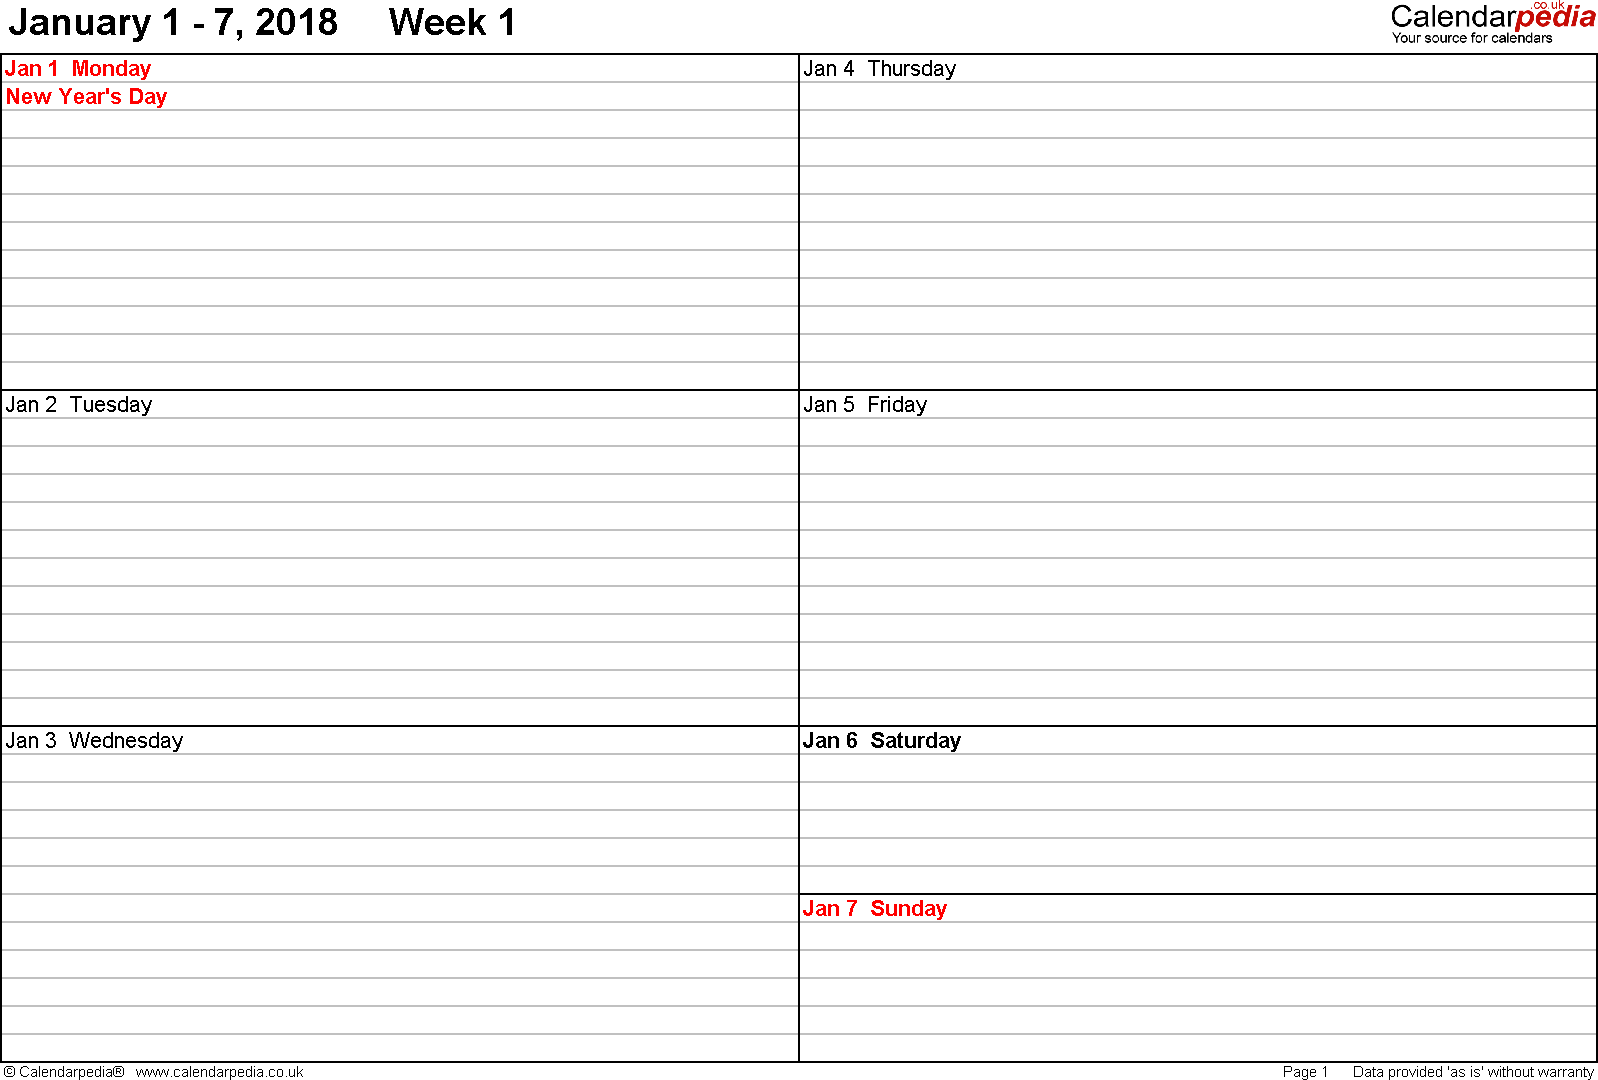 Excel template 5: Weekly calendar 2018, landscape orientation, 53 pages (1 calendar week on 1 page), week divided into 2 columns